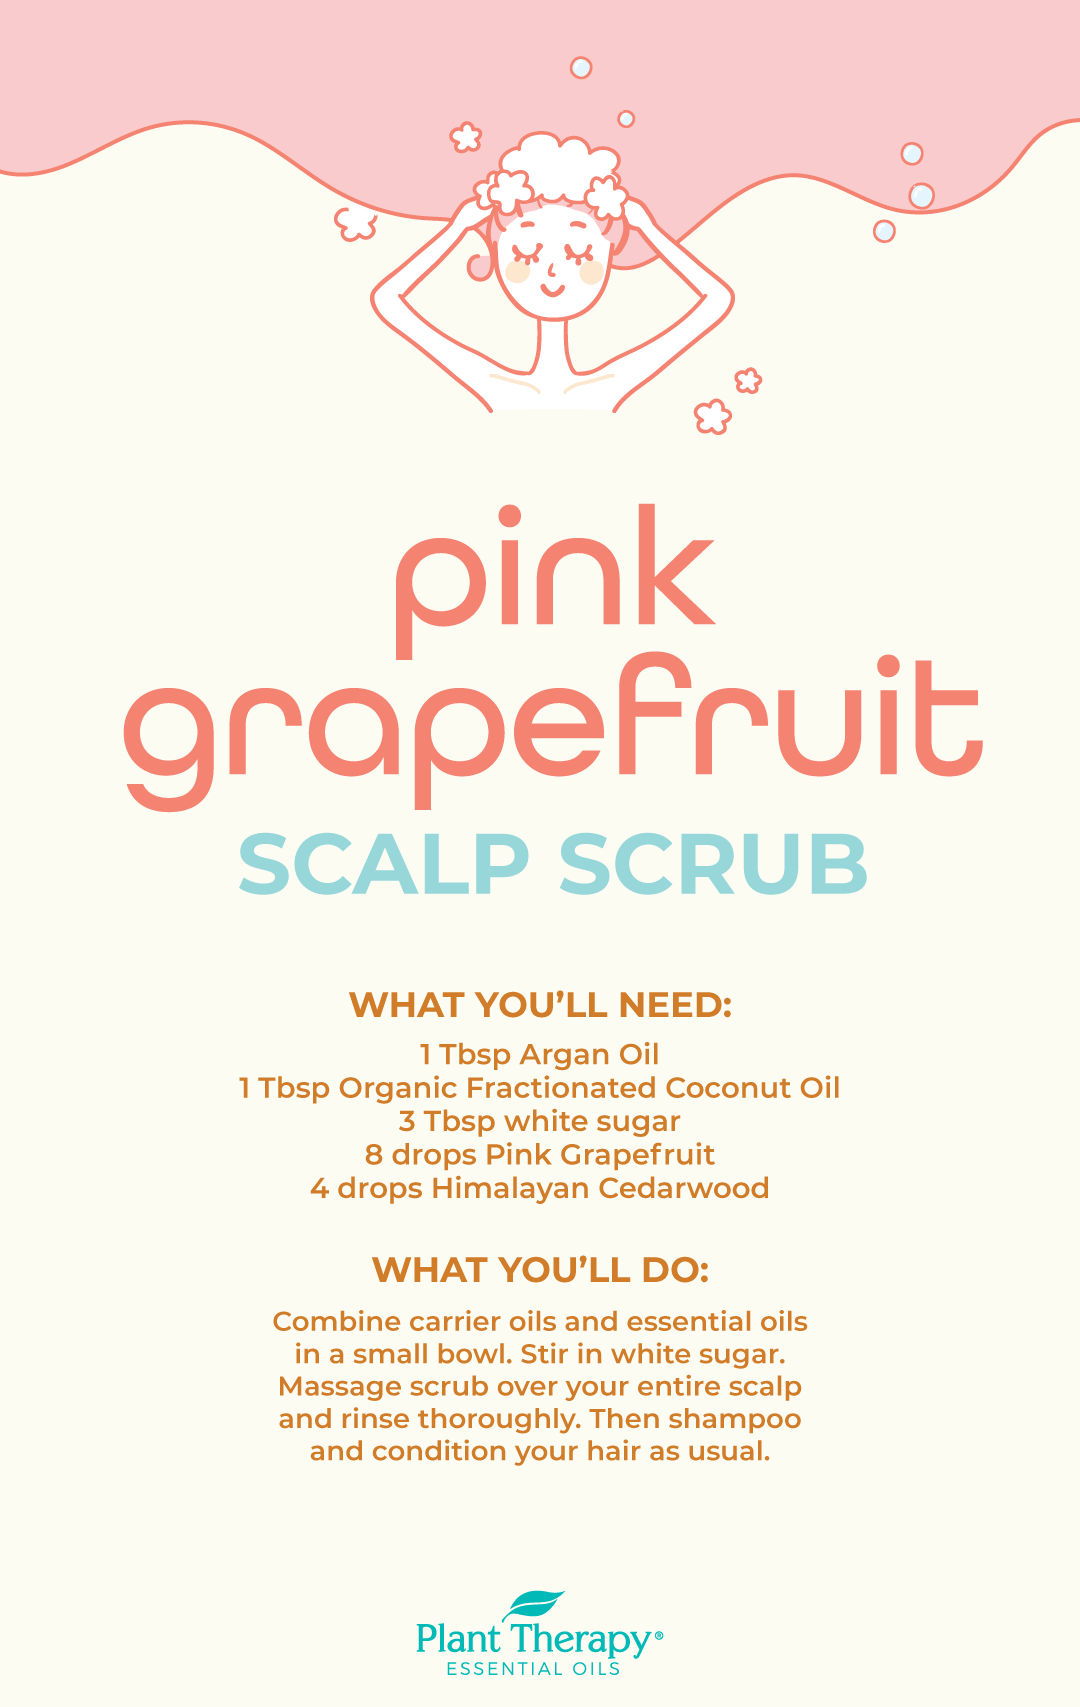 DIY Pink Grapefruit Scalp Scrub